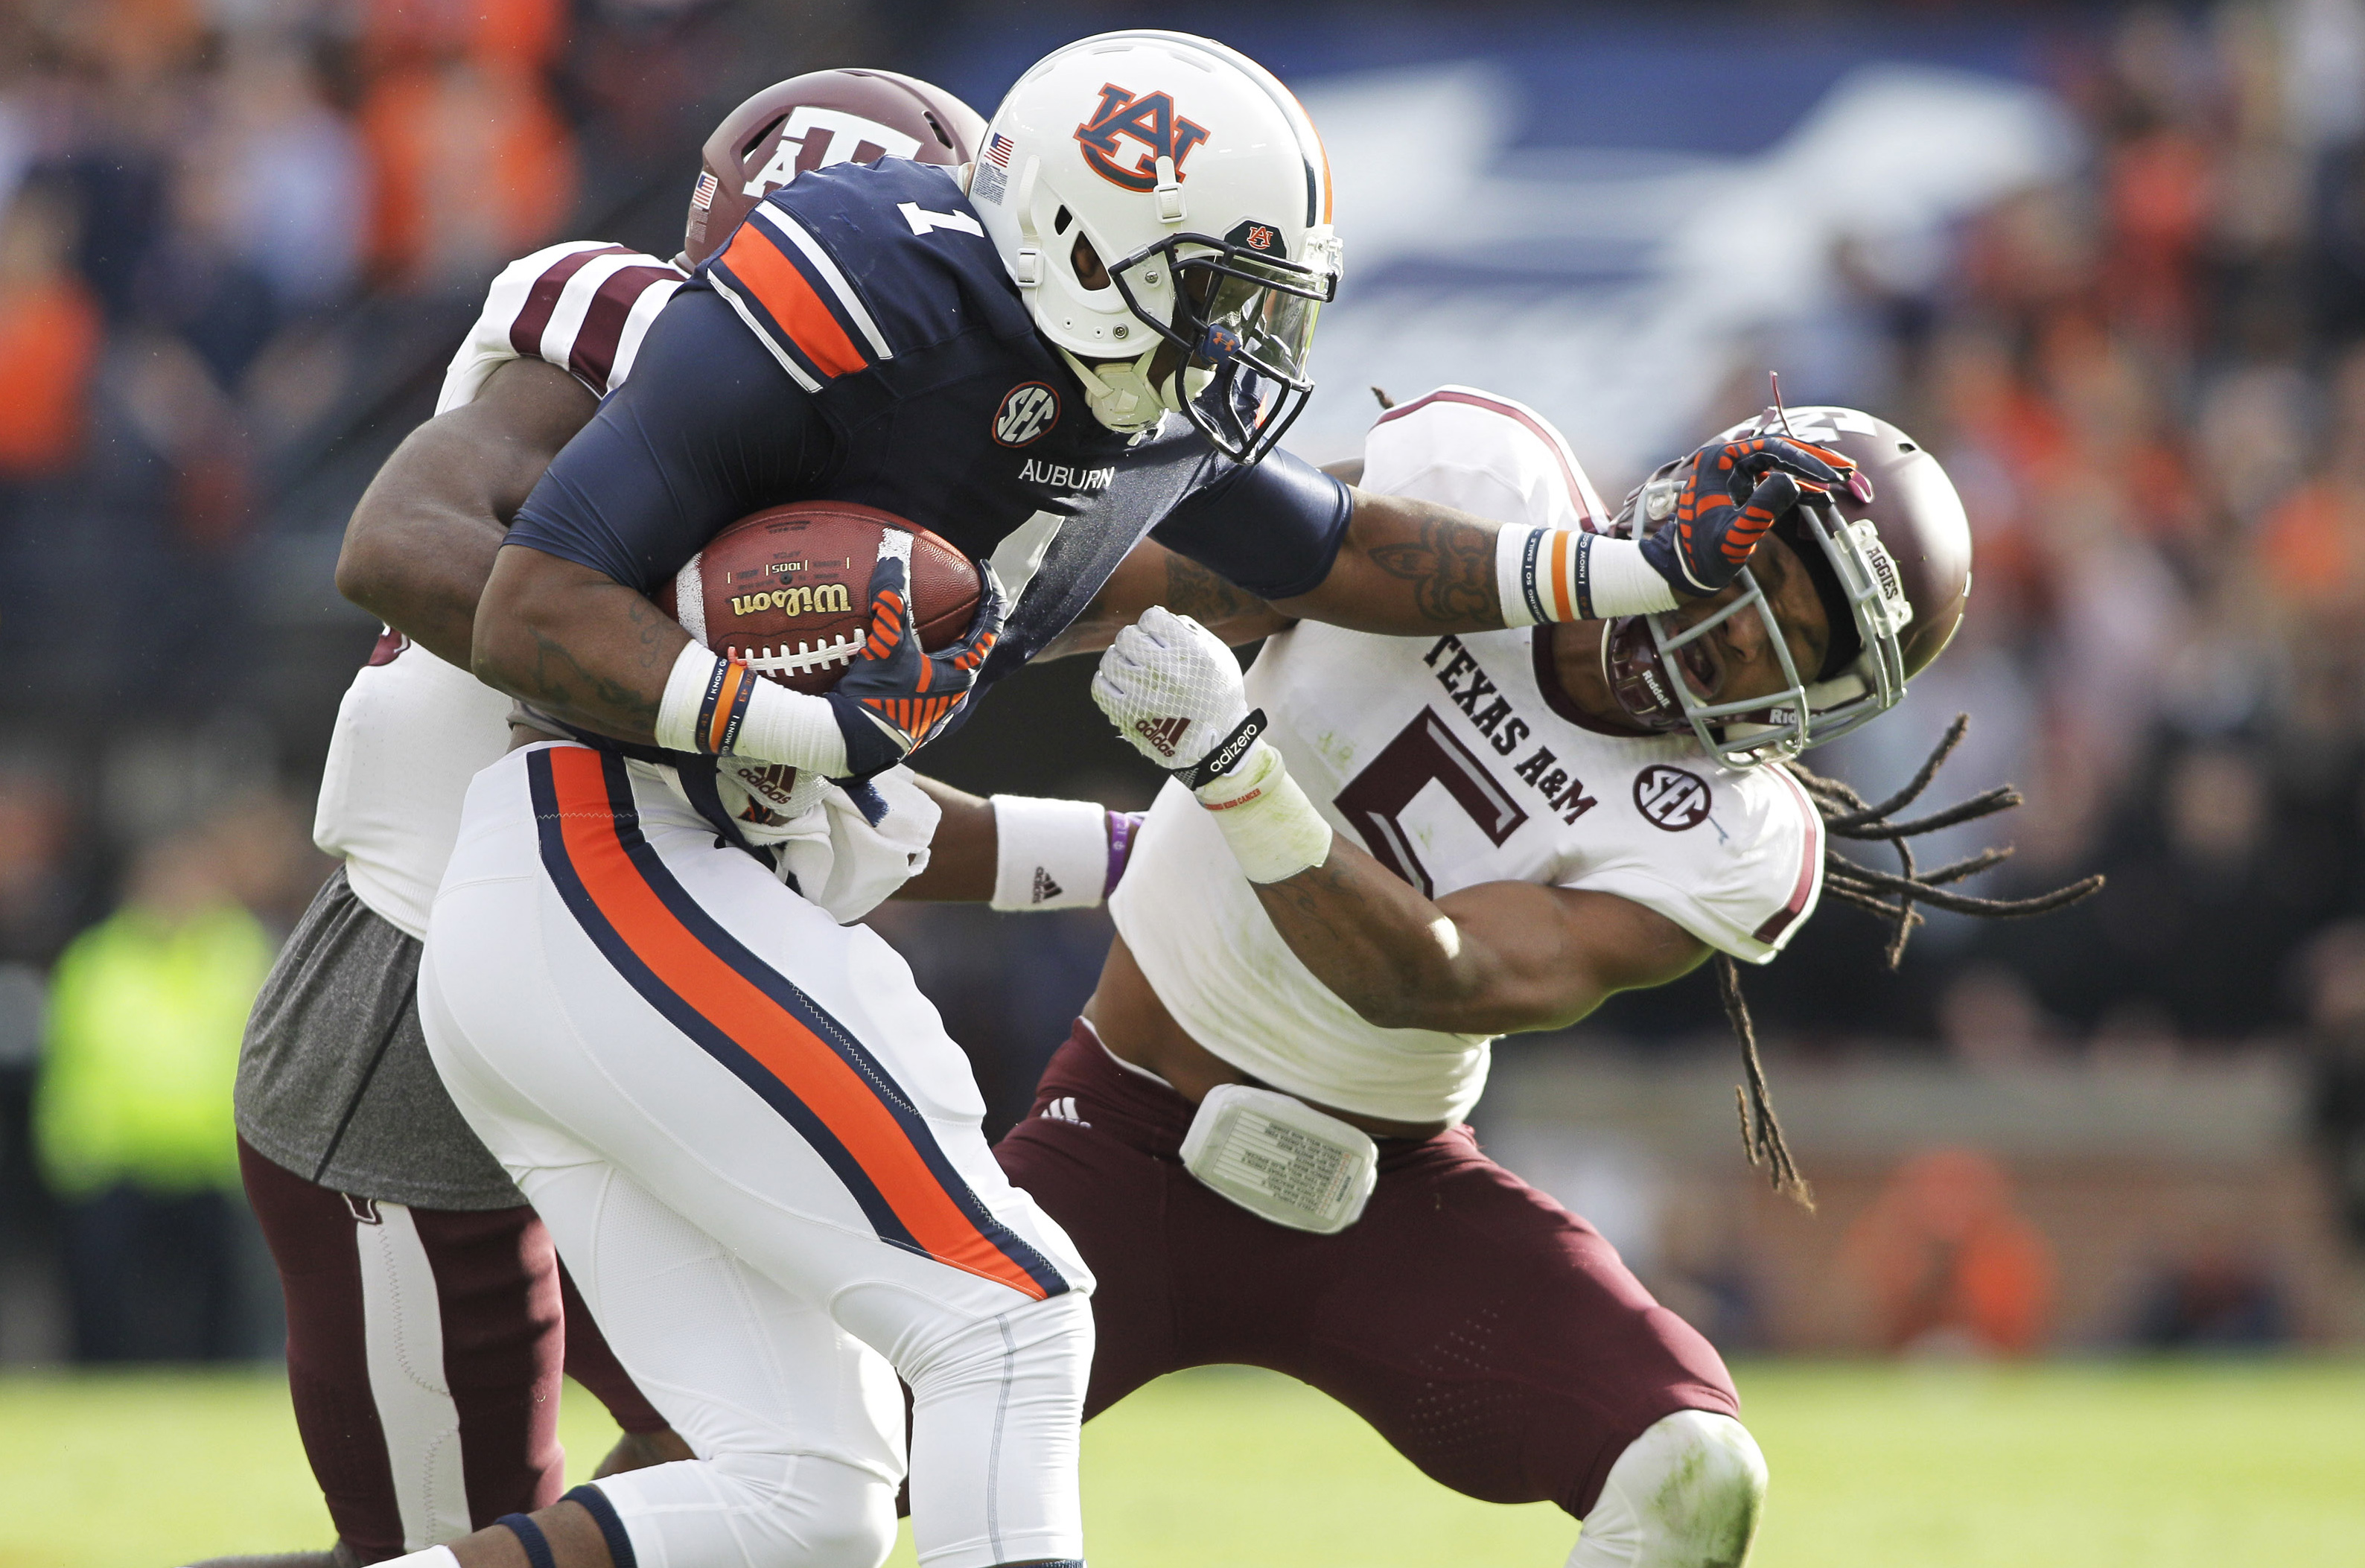 Dismissed Auburn WR's alleged punching spree includes punching a teammate